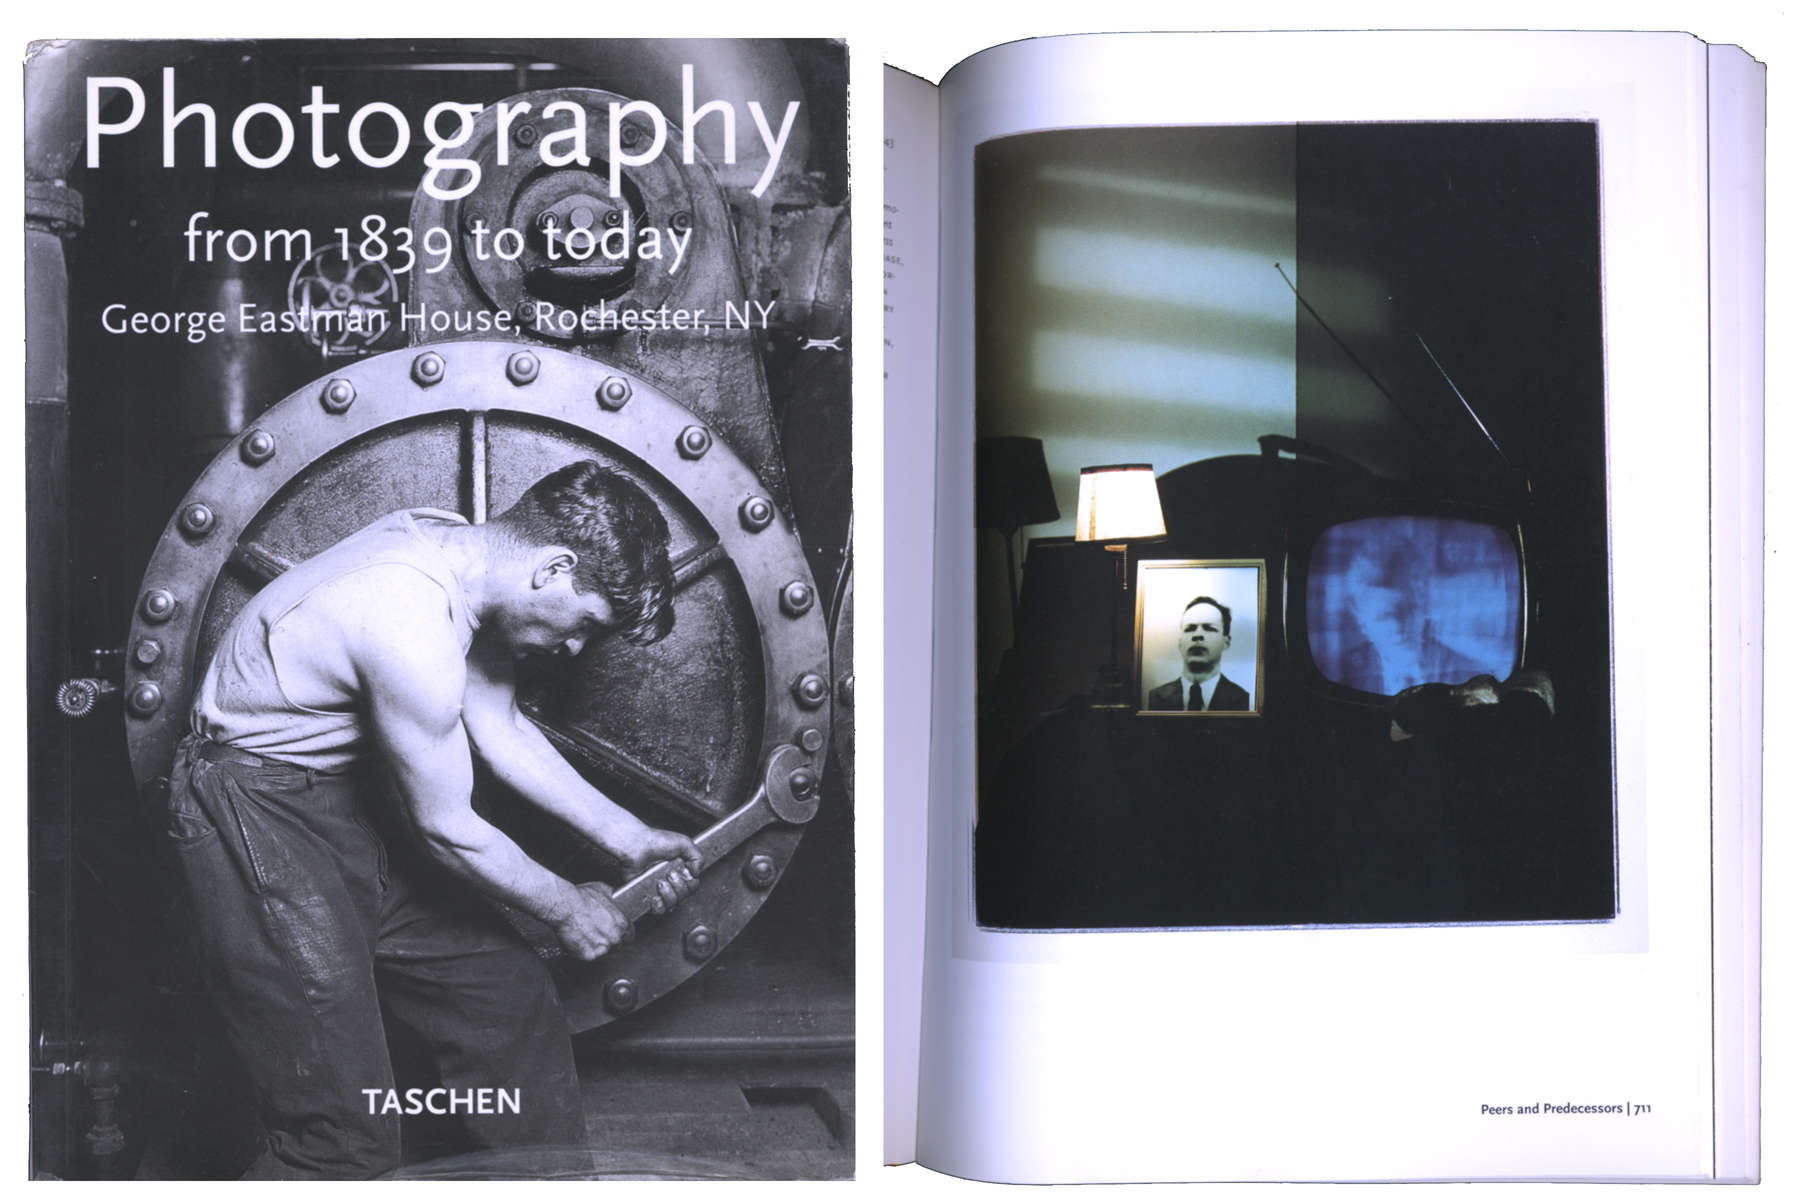 Photography from 1839 to todayGeorge Eastman House, Rochester, NYTaschen1999image page 711